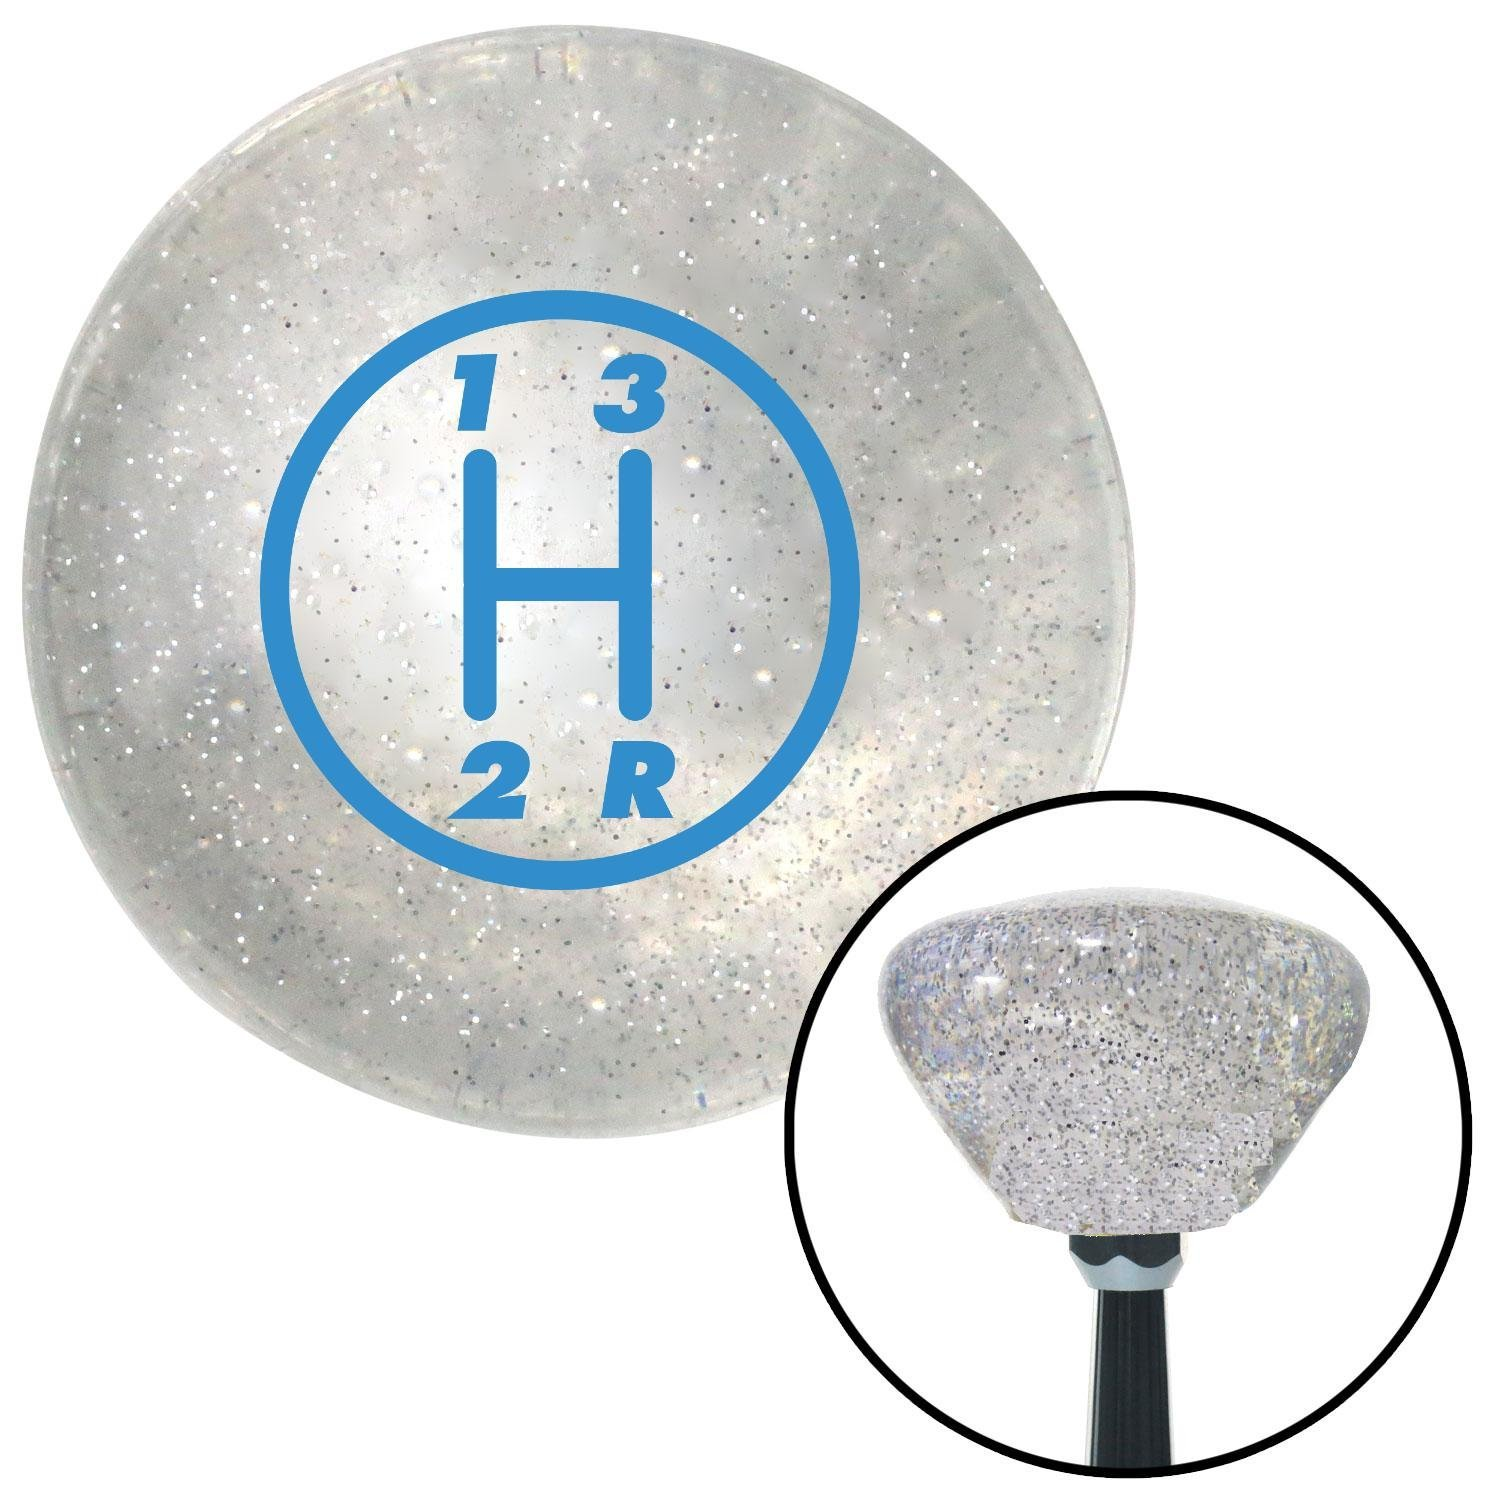 American Shifter 159382 Clear Retro Metal Flake Shift Knob with M16 x 1.5 Insert Blue 3 Speed